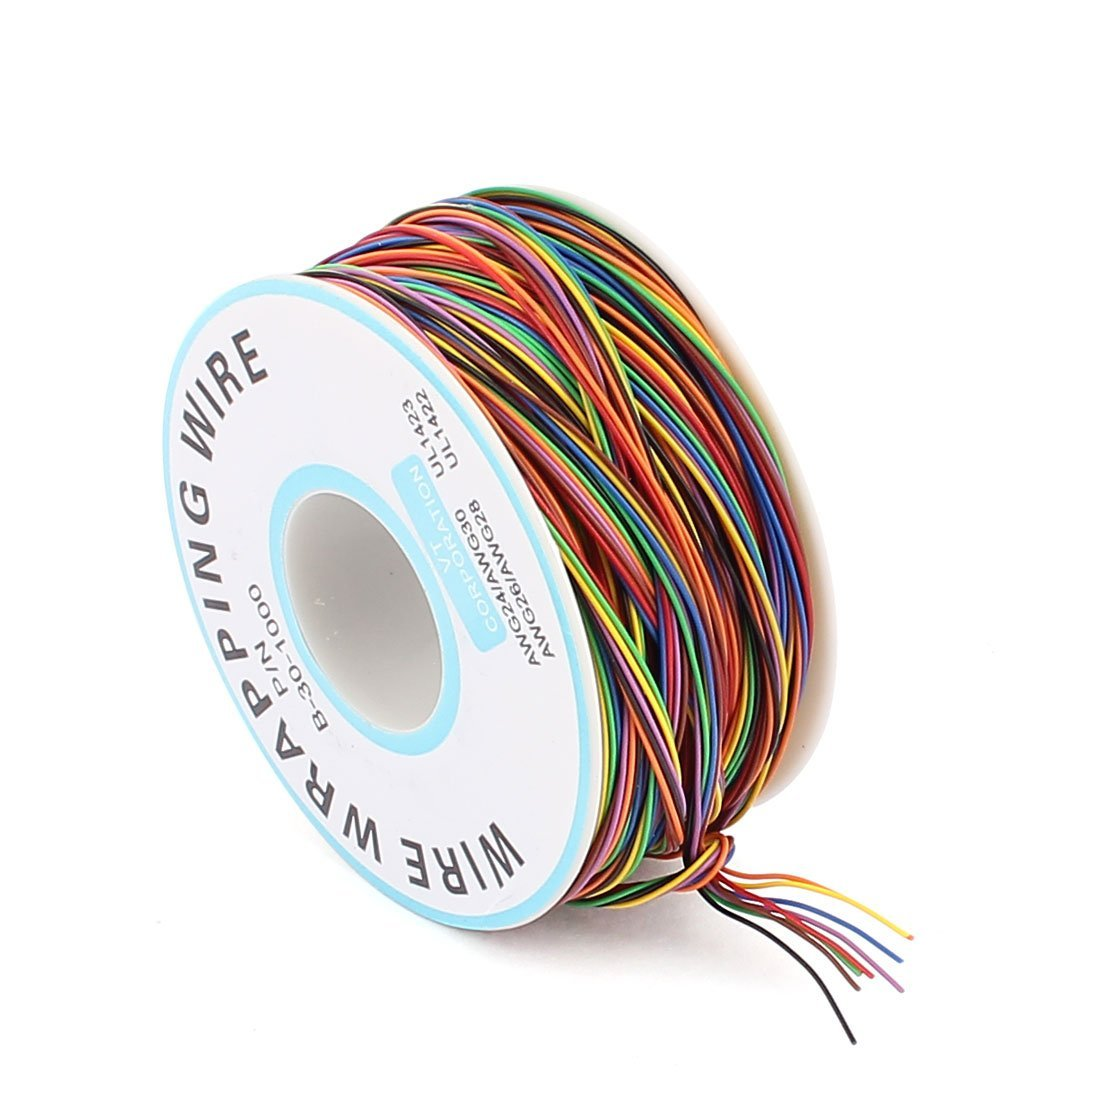 eDealMax Color clasificado 0, 25 mm Diámetro del alambre de cobre 30AWG Envoltura Wrap, 1000: Amazon.com: Industrial & Scientific